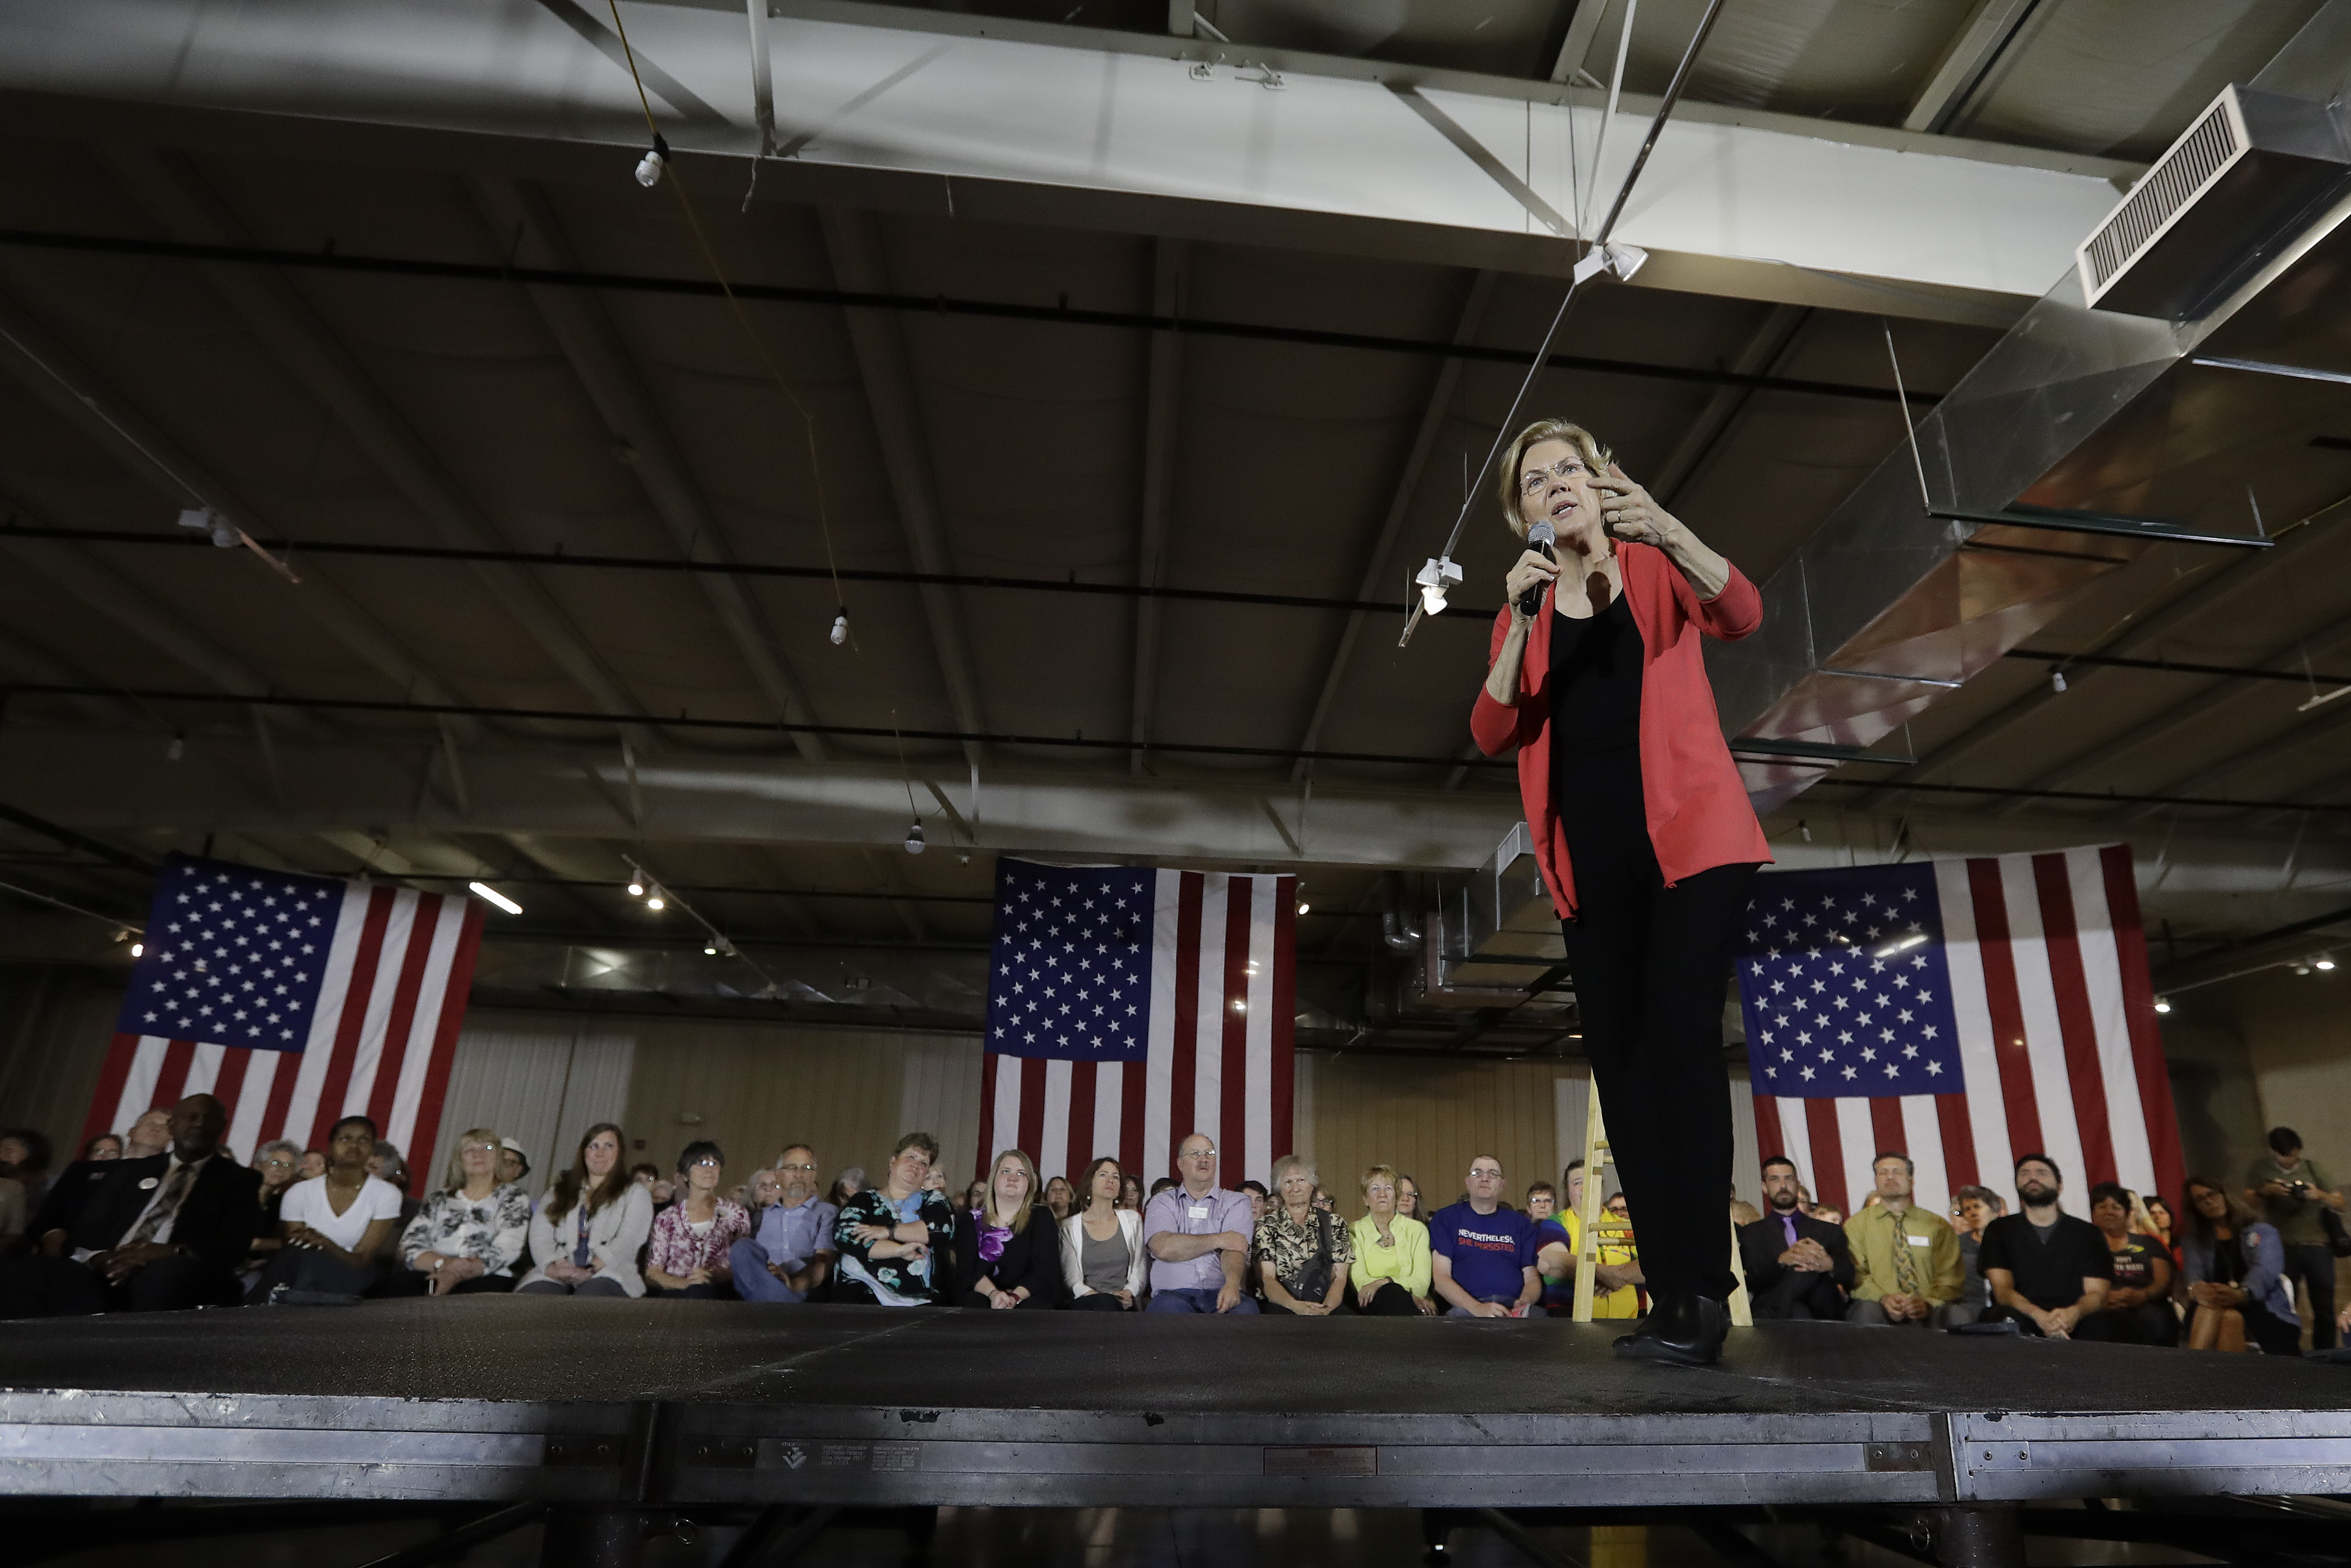 Democratic presidential candidate Sen. Elizabeth Warren, D-Mass., speaks at the RV/MH Hall of Fame and Museum, June 5, 2019, in Elkhart, Indiana.